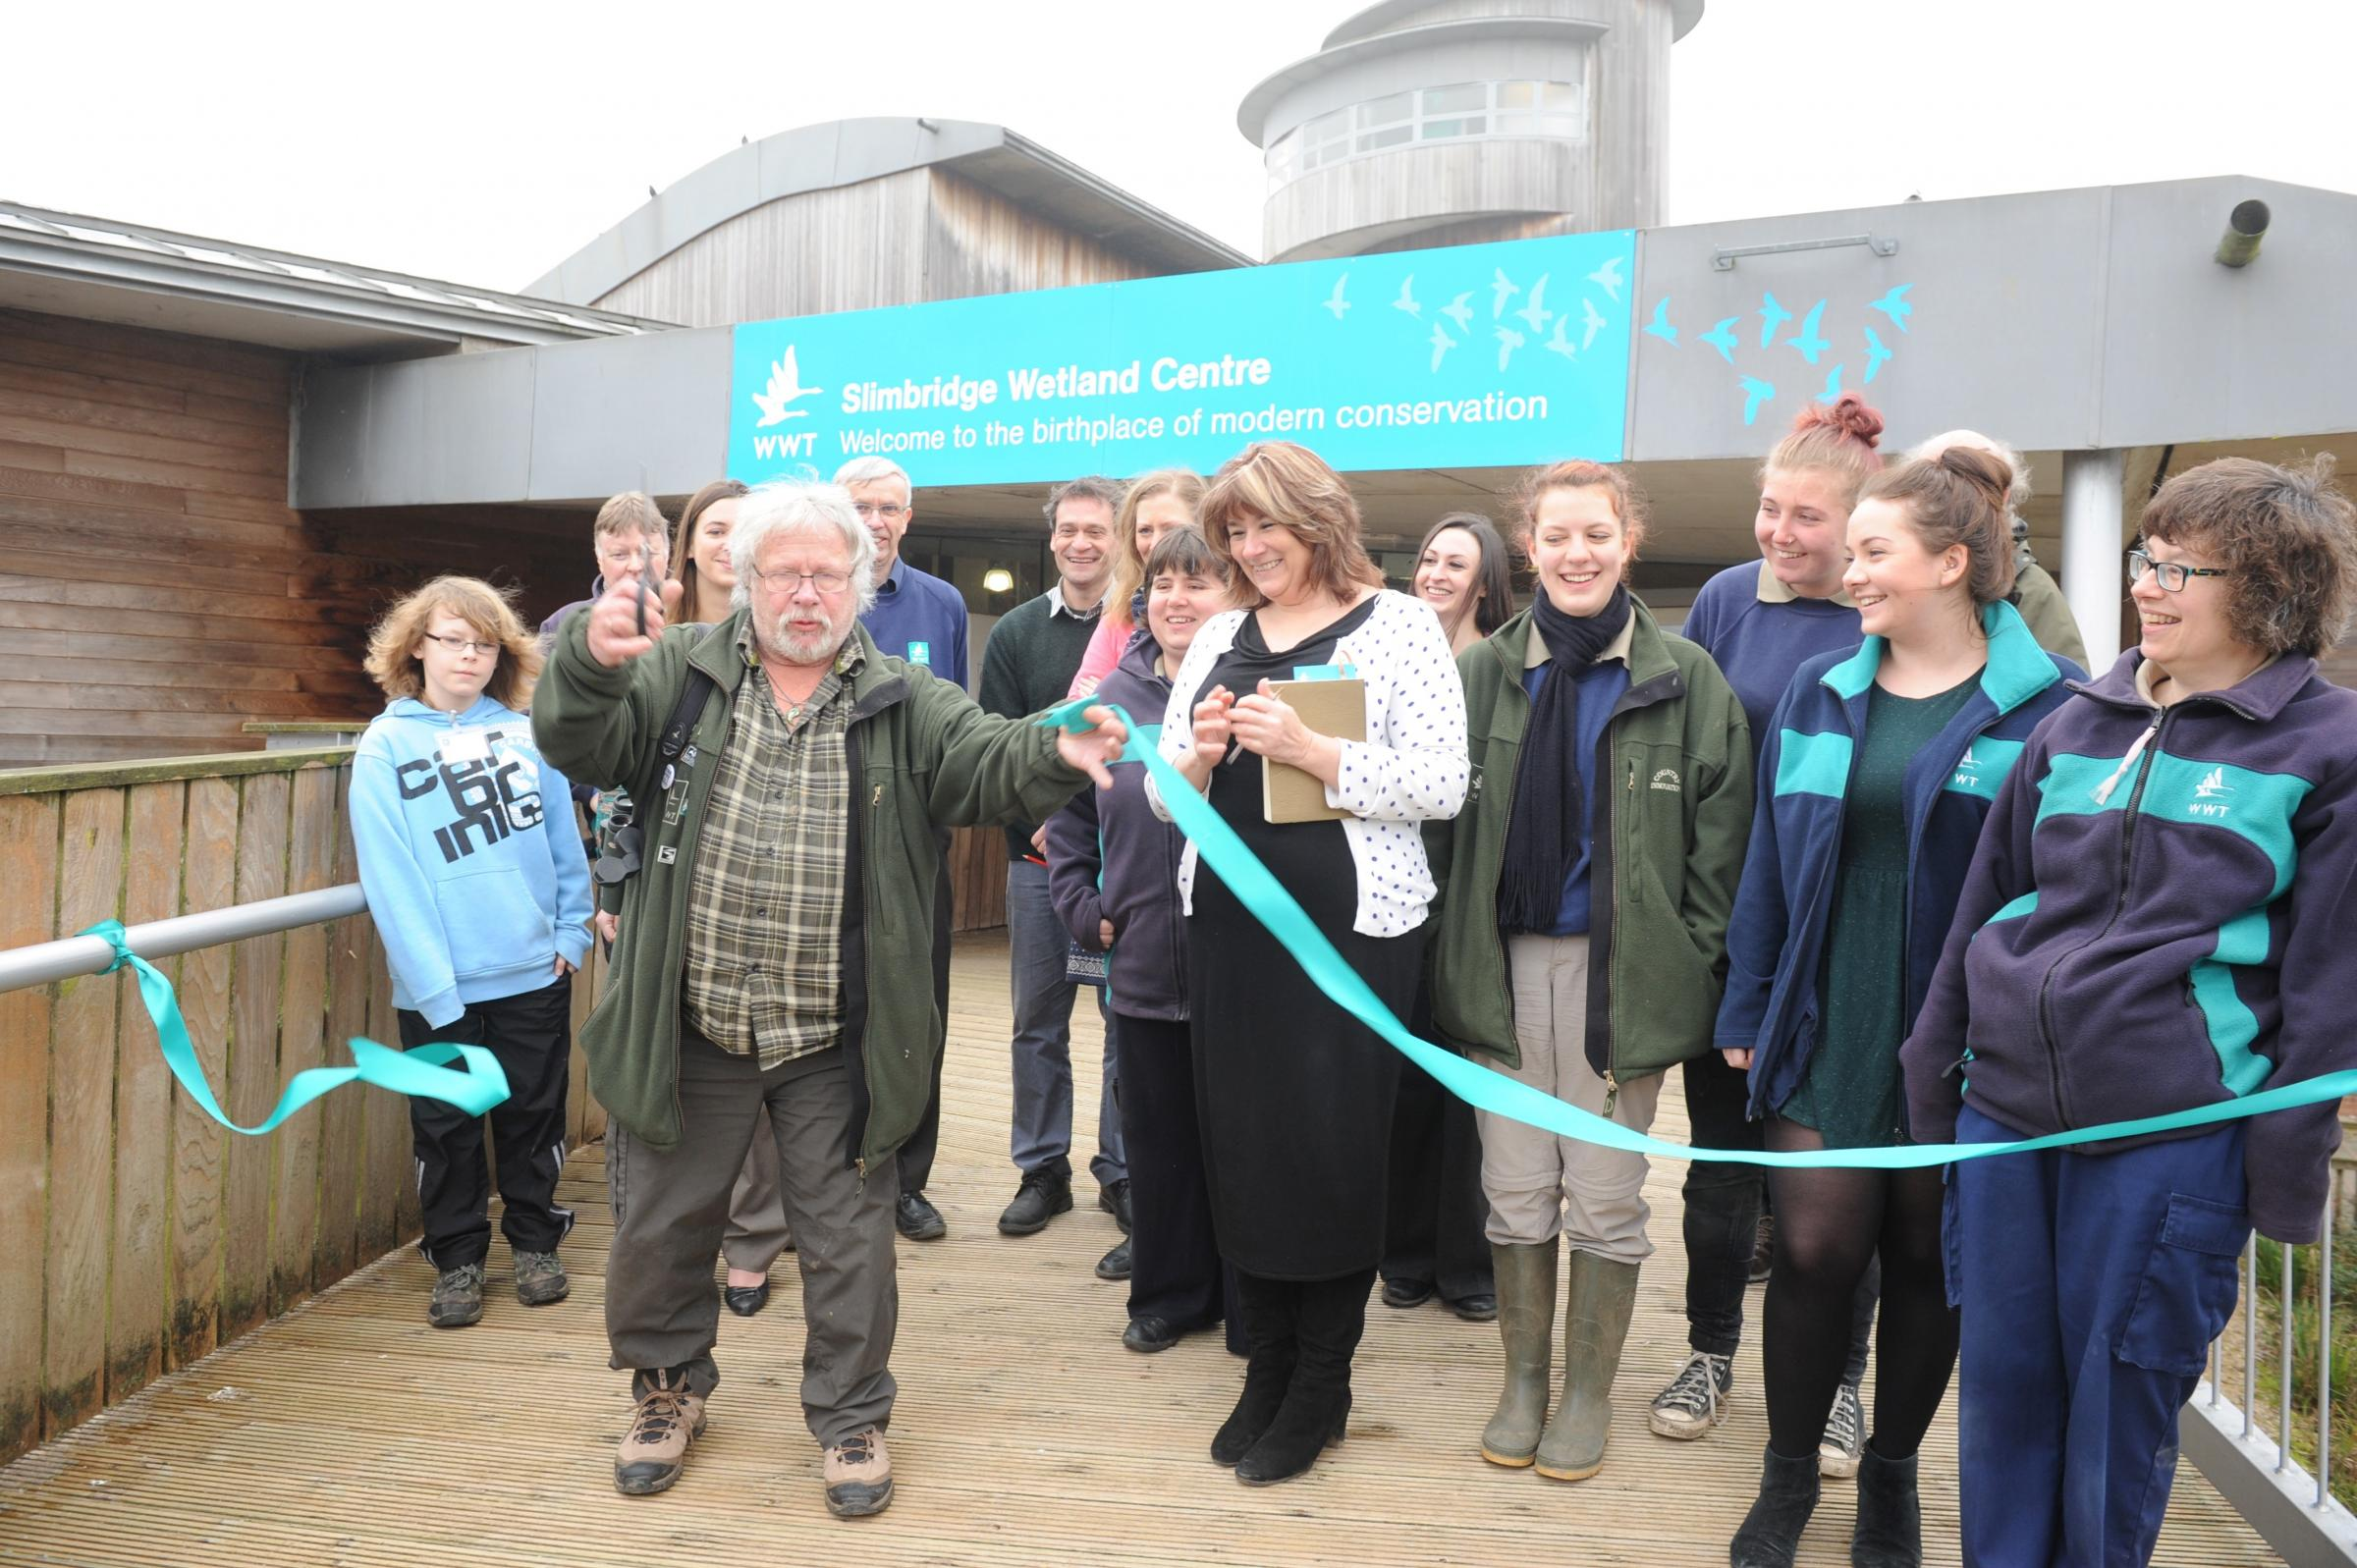 Celebrity birdwatcher and TV presenter Bill Oddie officially opens the new foyer at the Wildfowl and Wetlands Trust Slimbridge Centre